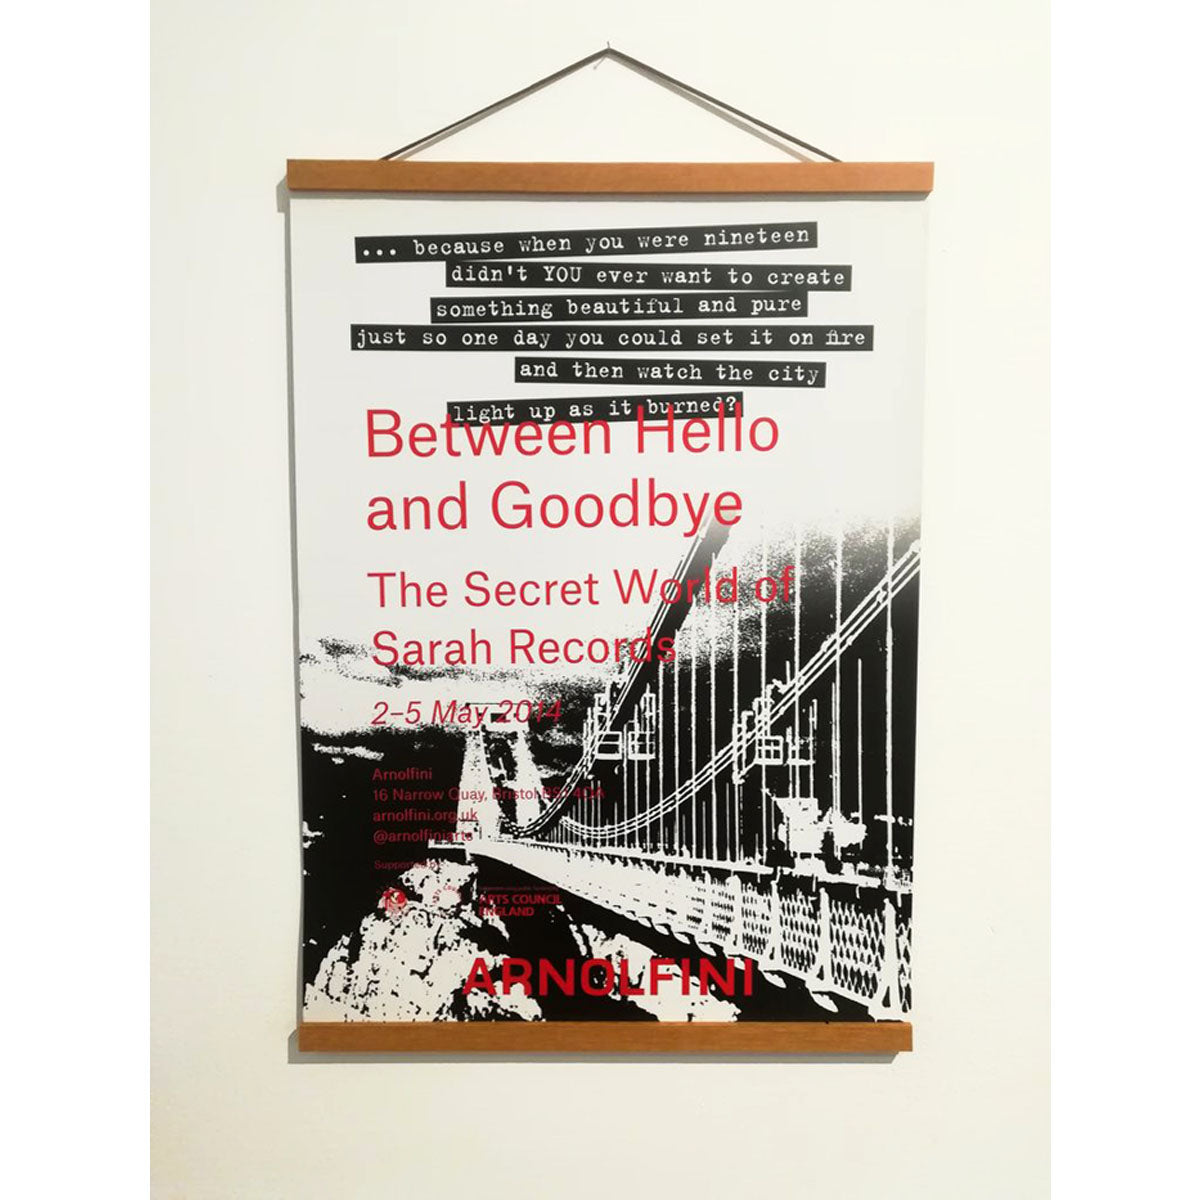 Between Hello and Goodbye - Sarah Records Original Archive Poster - Arnolfini Bookshop